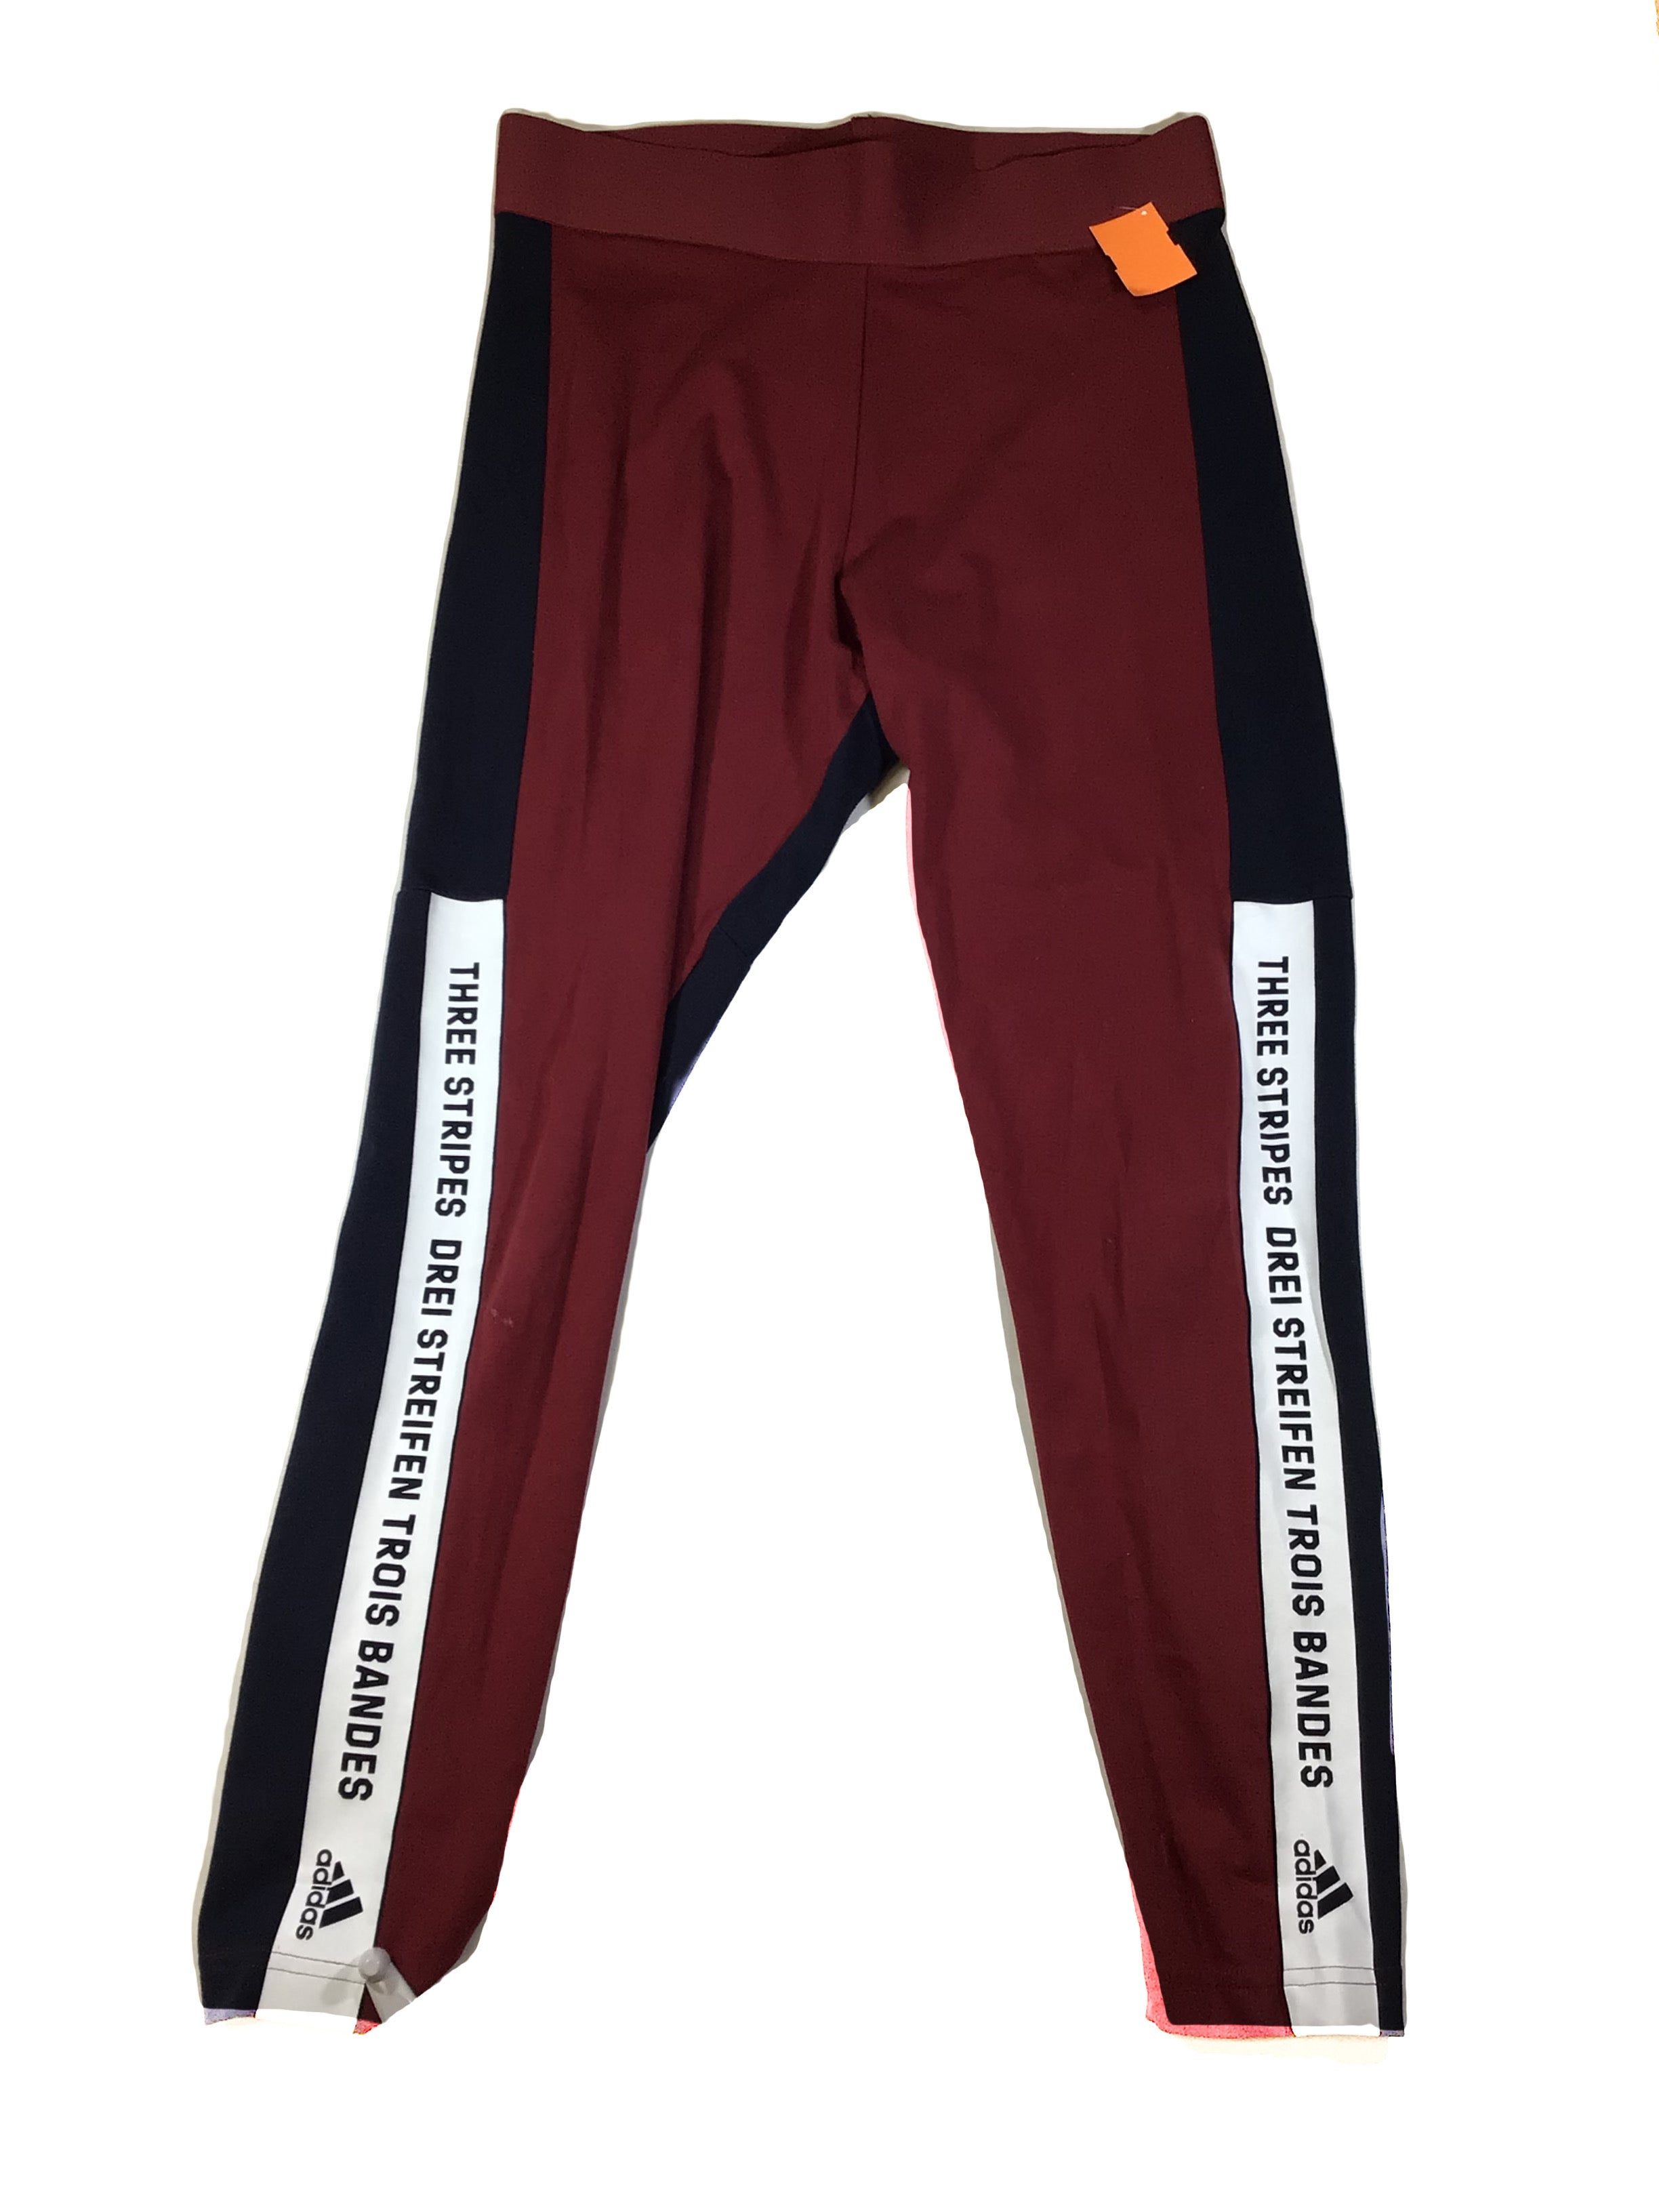 Primary Photo - BRAND: ADIDAS <BR>STYLE: ATHLETIC PANTS <BR>COLOR: RUST <BR>SIZE: L <BR>SKU: 213-21394-44182